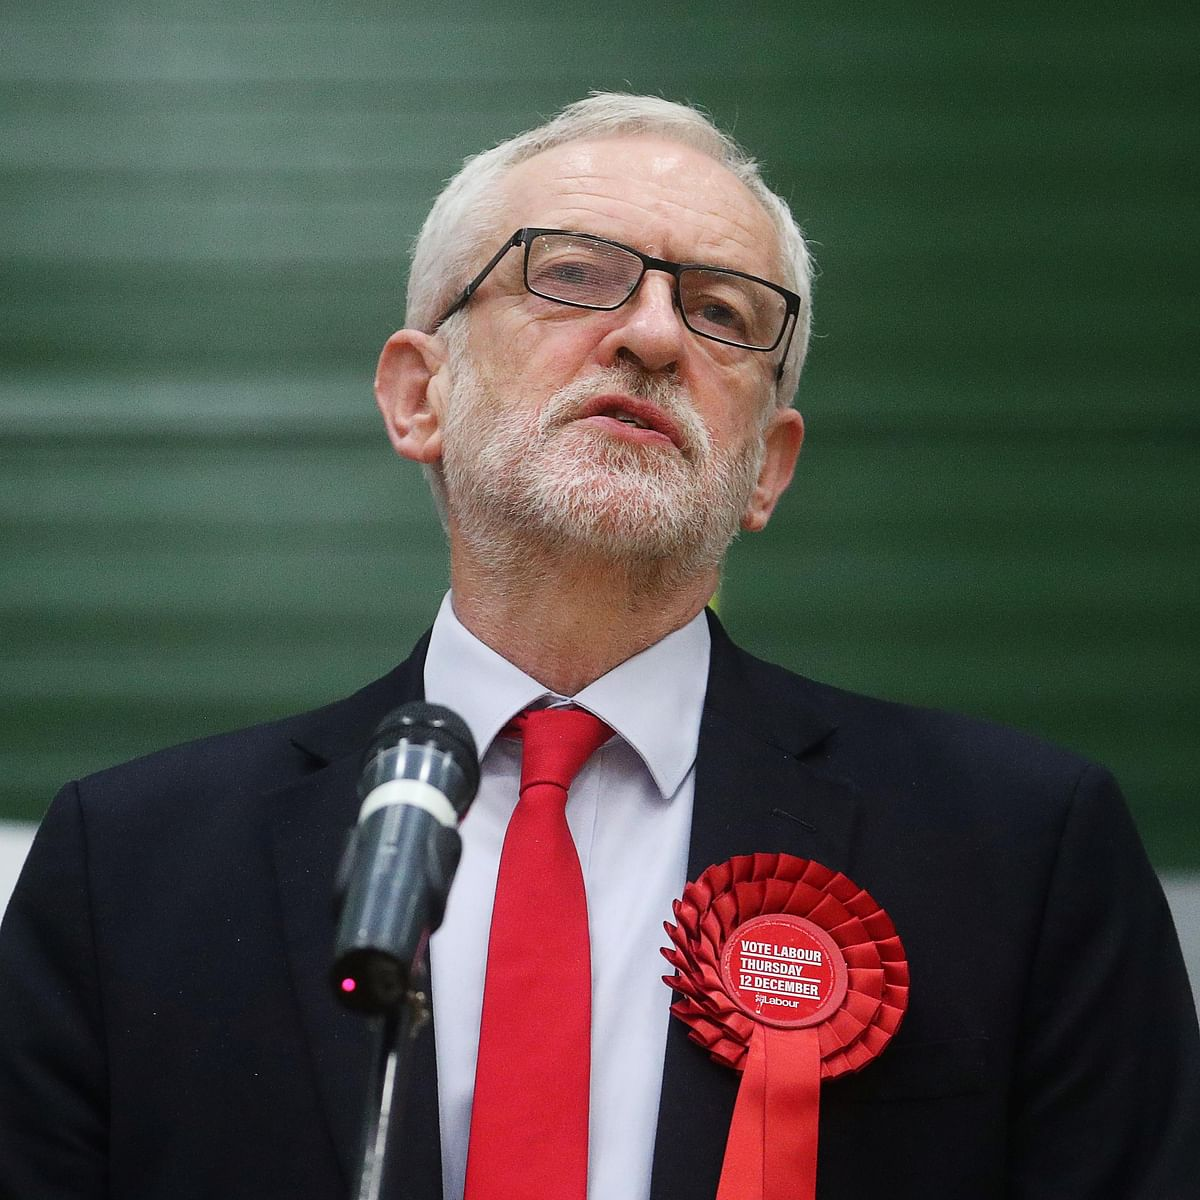 UK Labour leader Corbyn sorry for election defeat